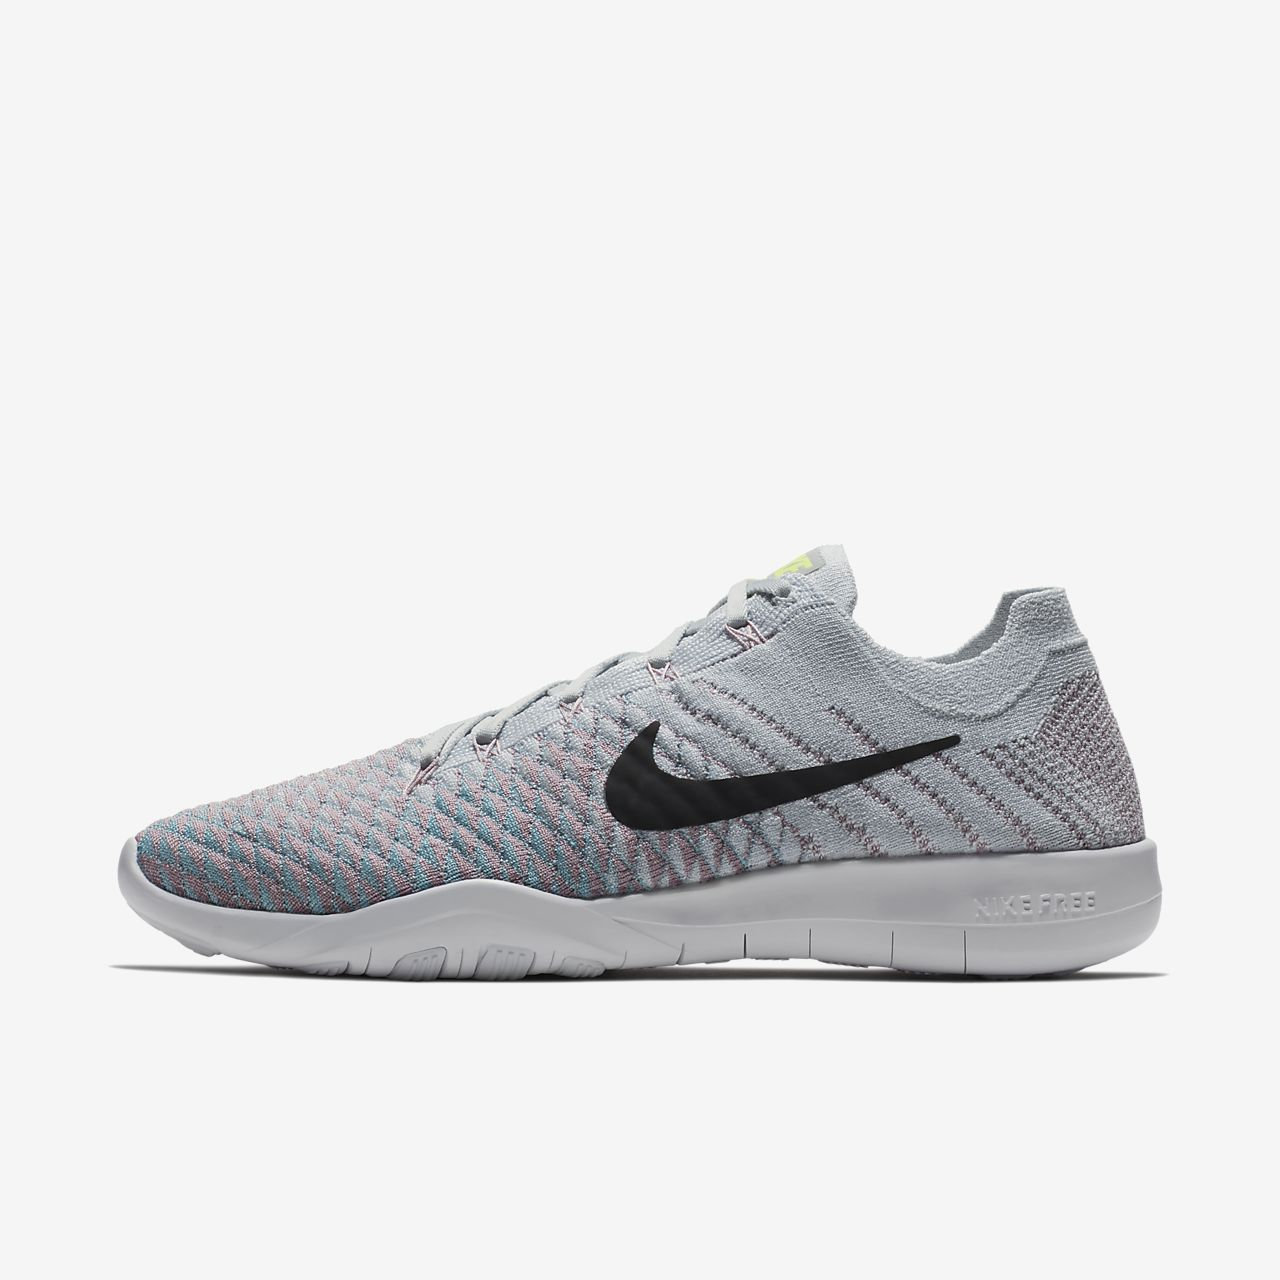 the best attitude 64cfc 329b4 Nike Free TR Flyknit 2 Women's Bodyweight Training, Workout Shoe